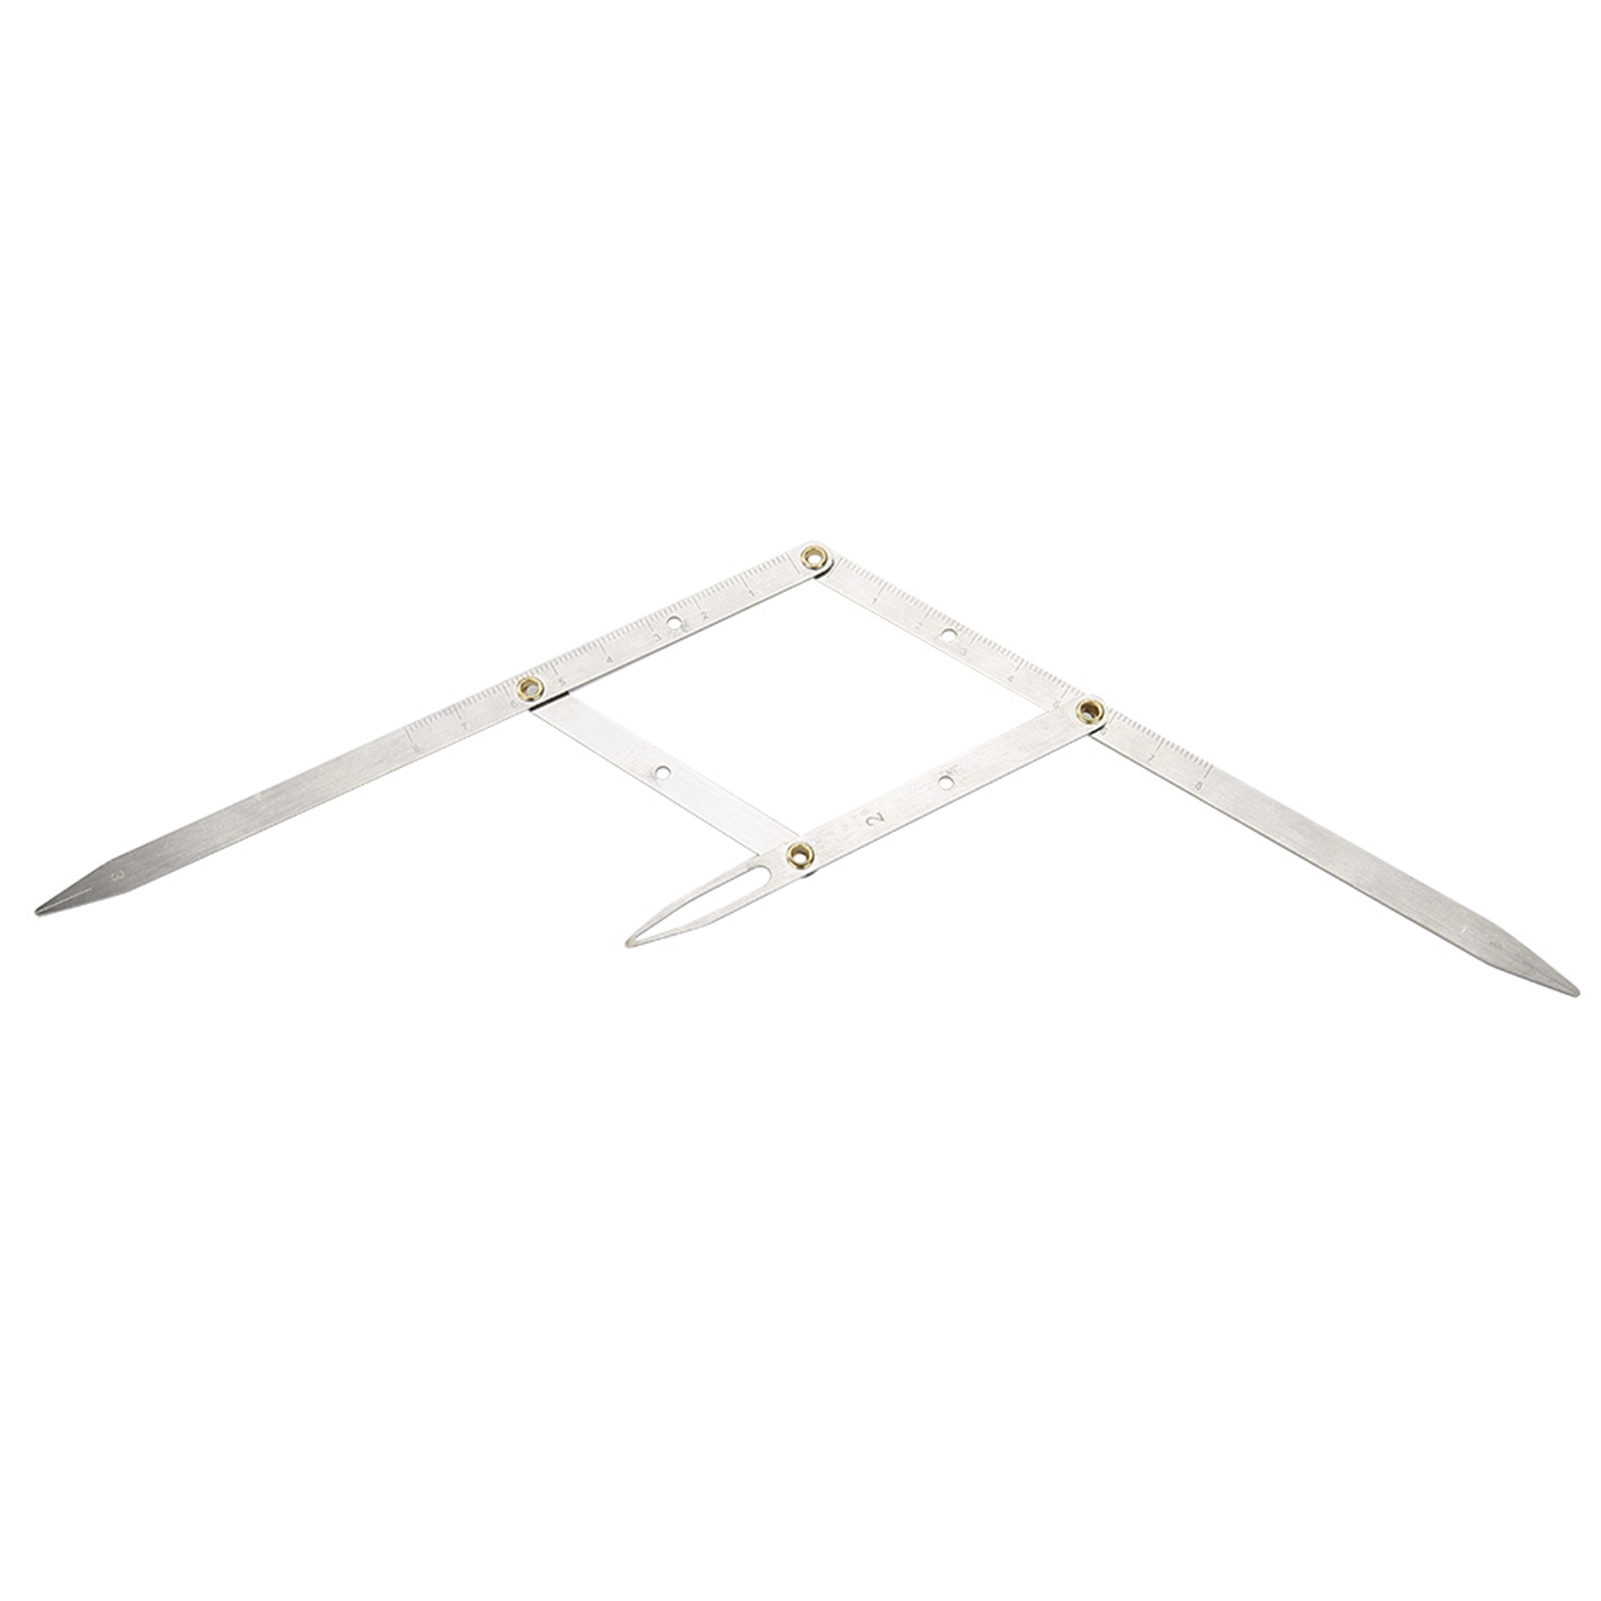 Microblading-Caliper-Ratio-Eyebrow-Measure-Ruler-Permanent-Makeup-Stencil-Tools 縮圖 2